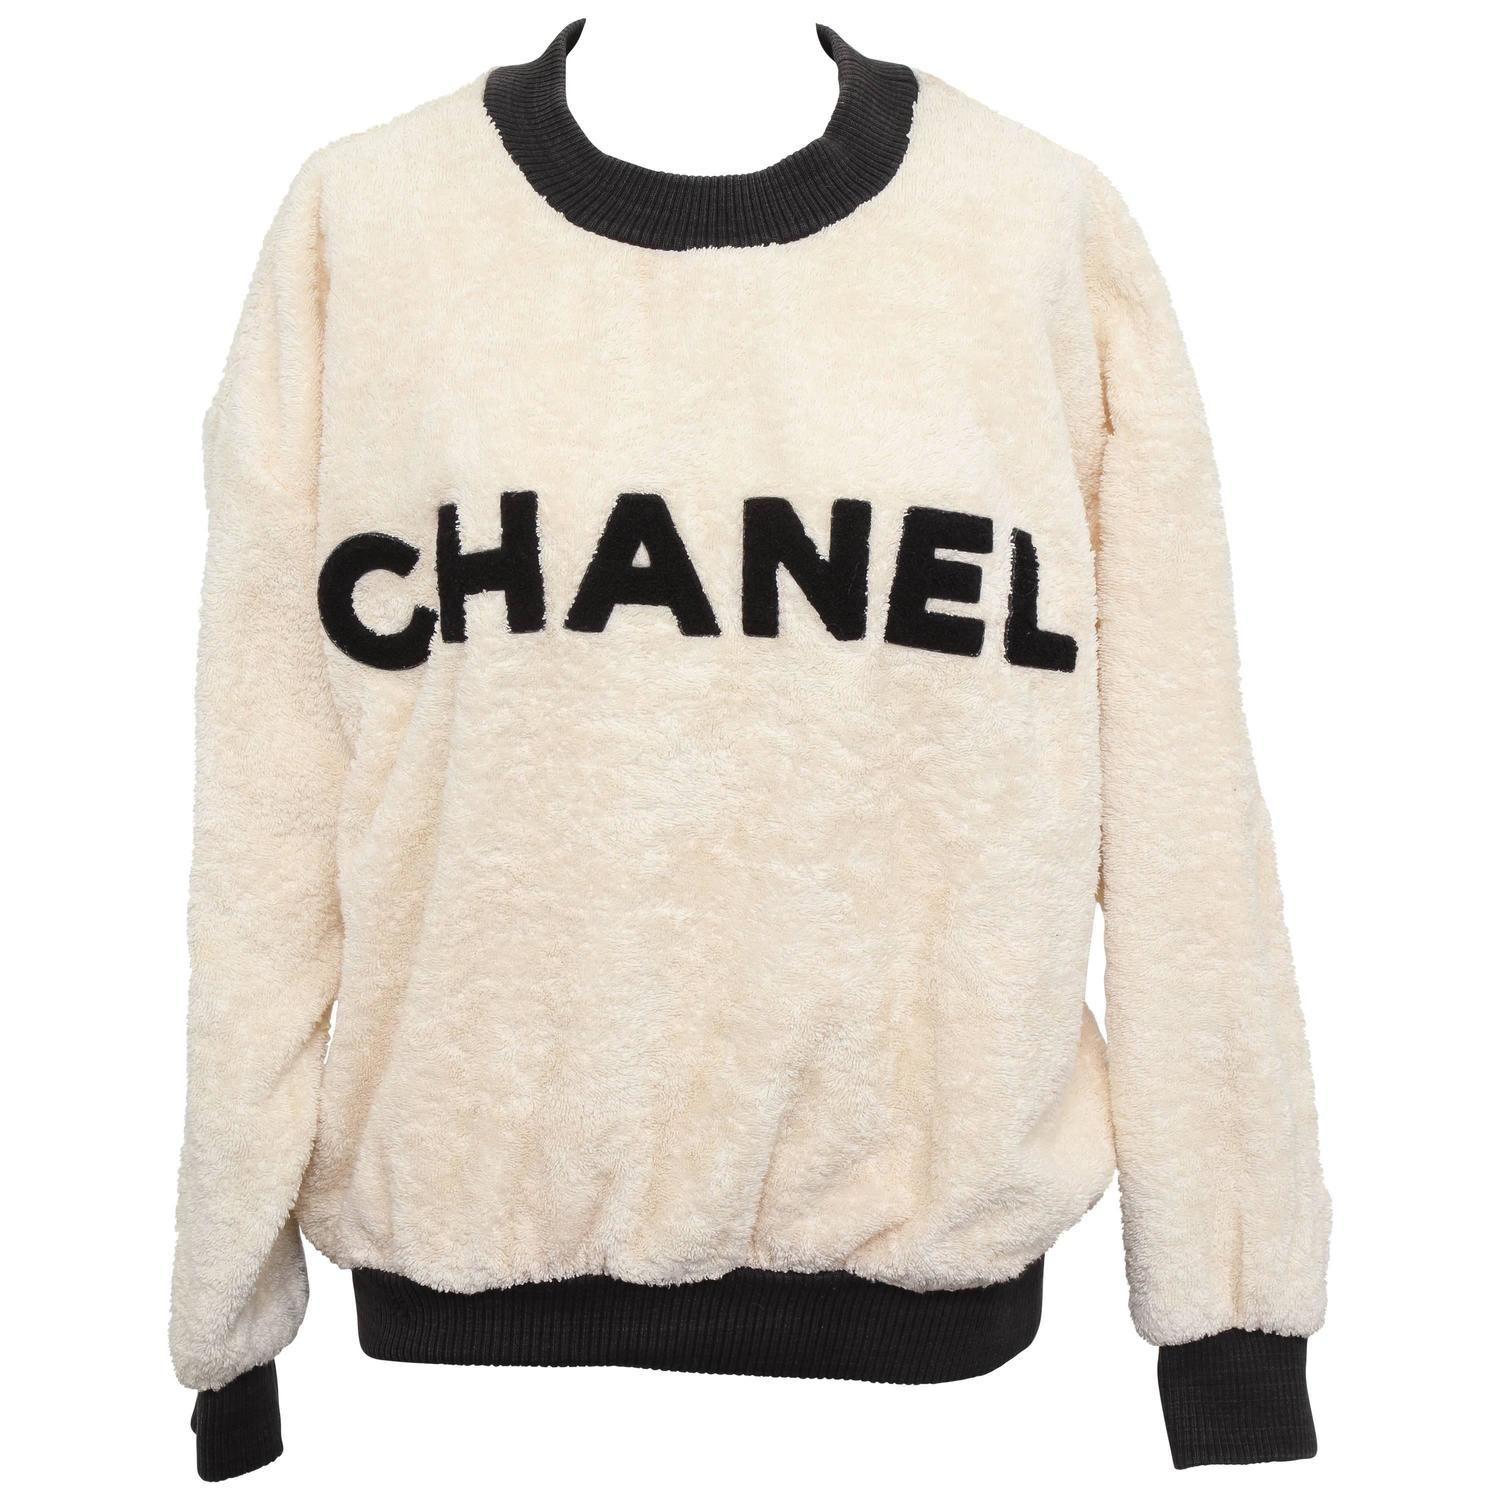 Vintage Chanel Sweat Shirt Sweater with Iconic CC 1980 | Chanel ...